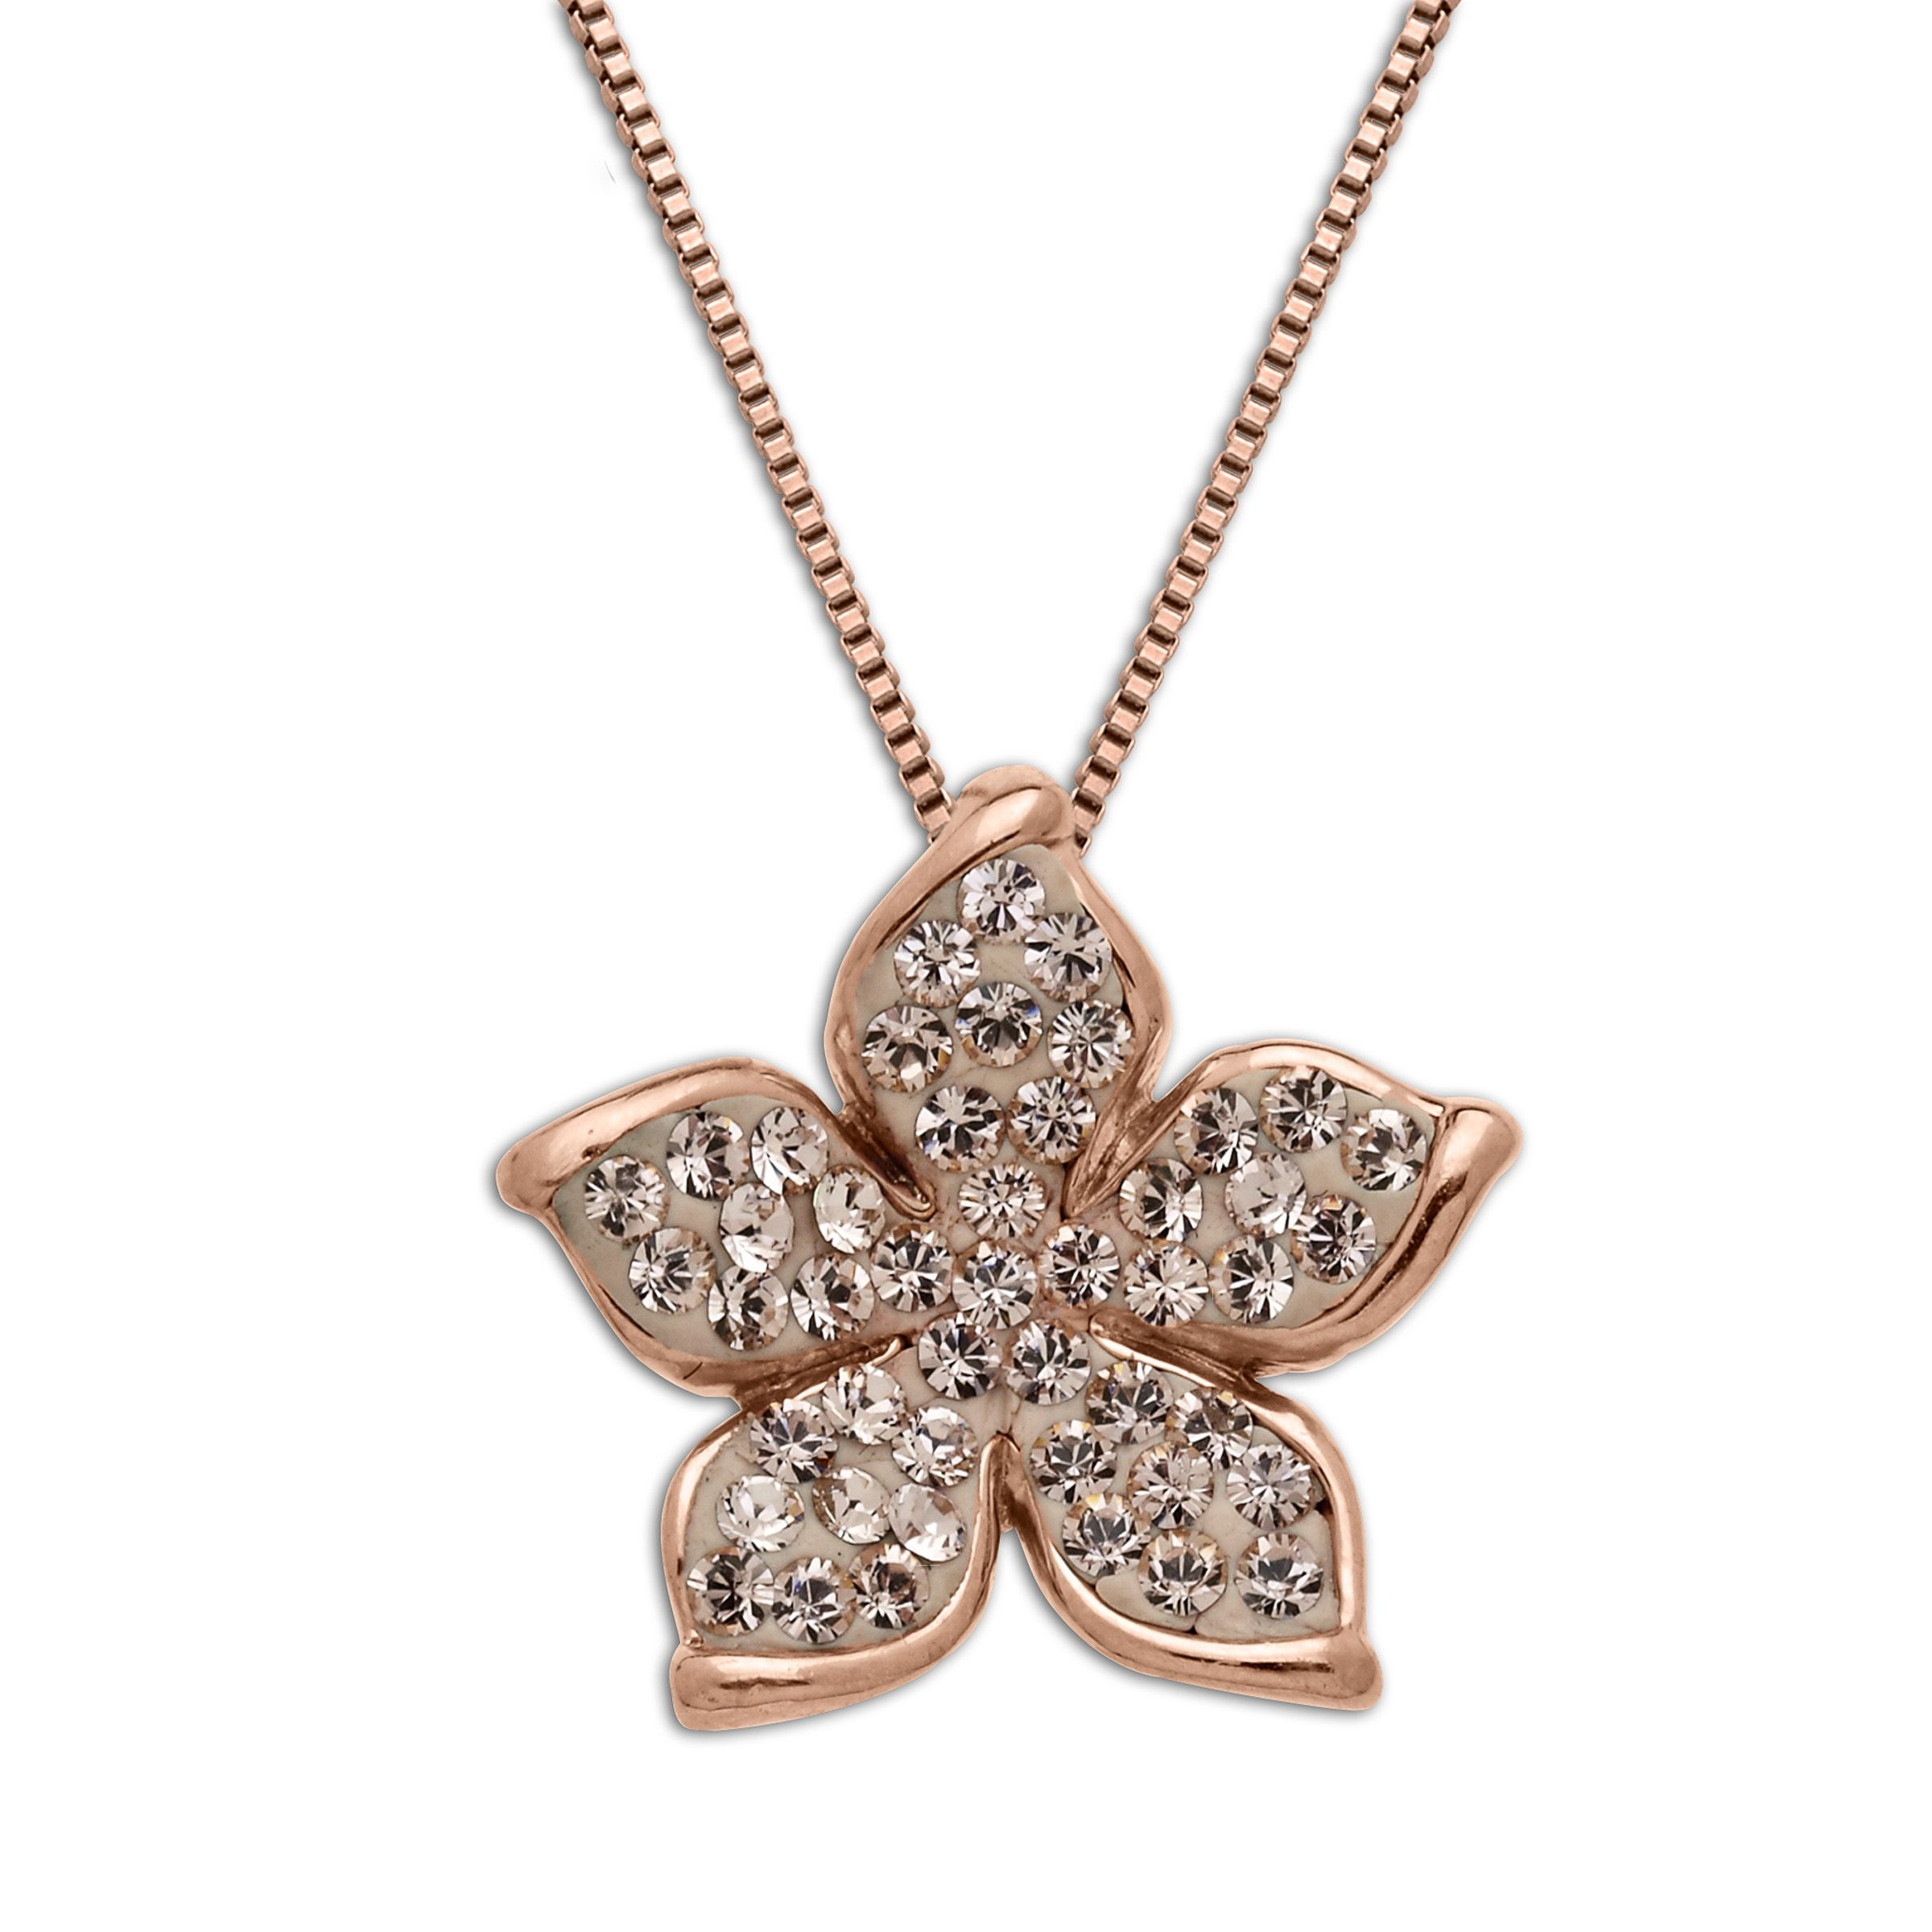 Crystaluxe Flower Pendant Necklace with Swarovski Crystals in 14K